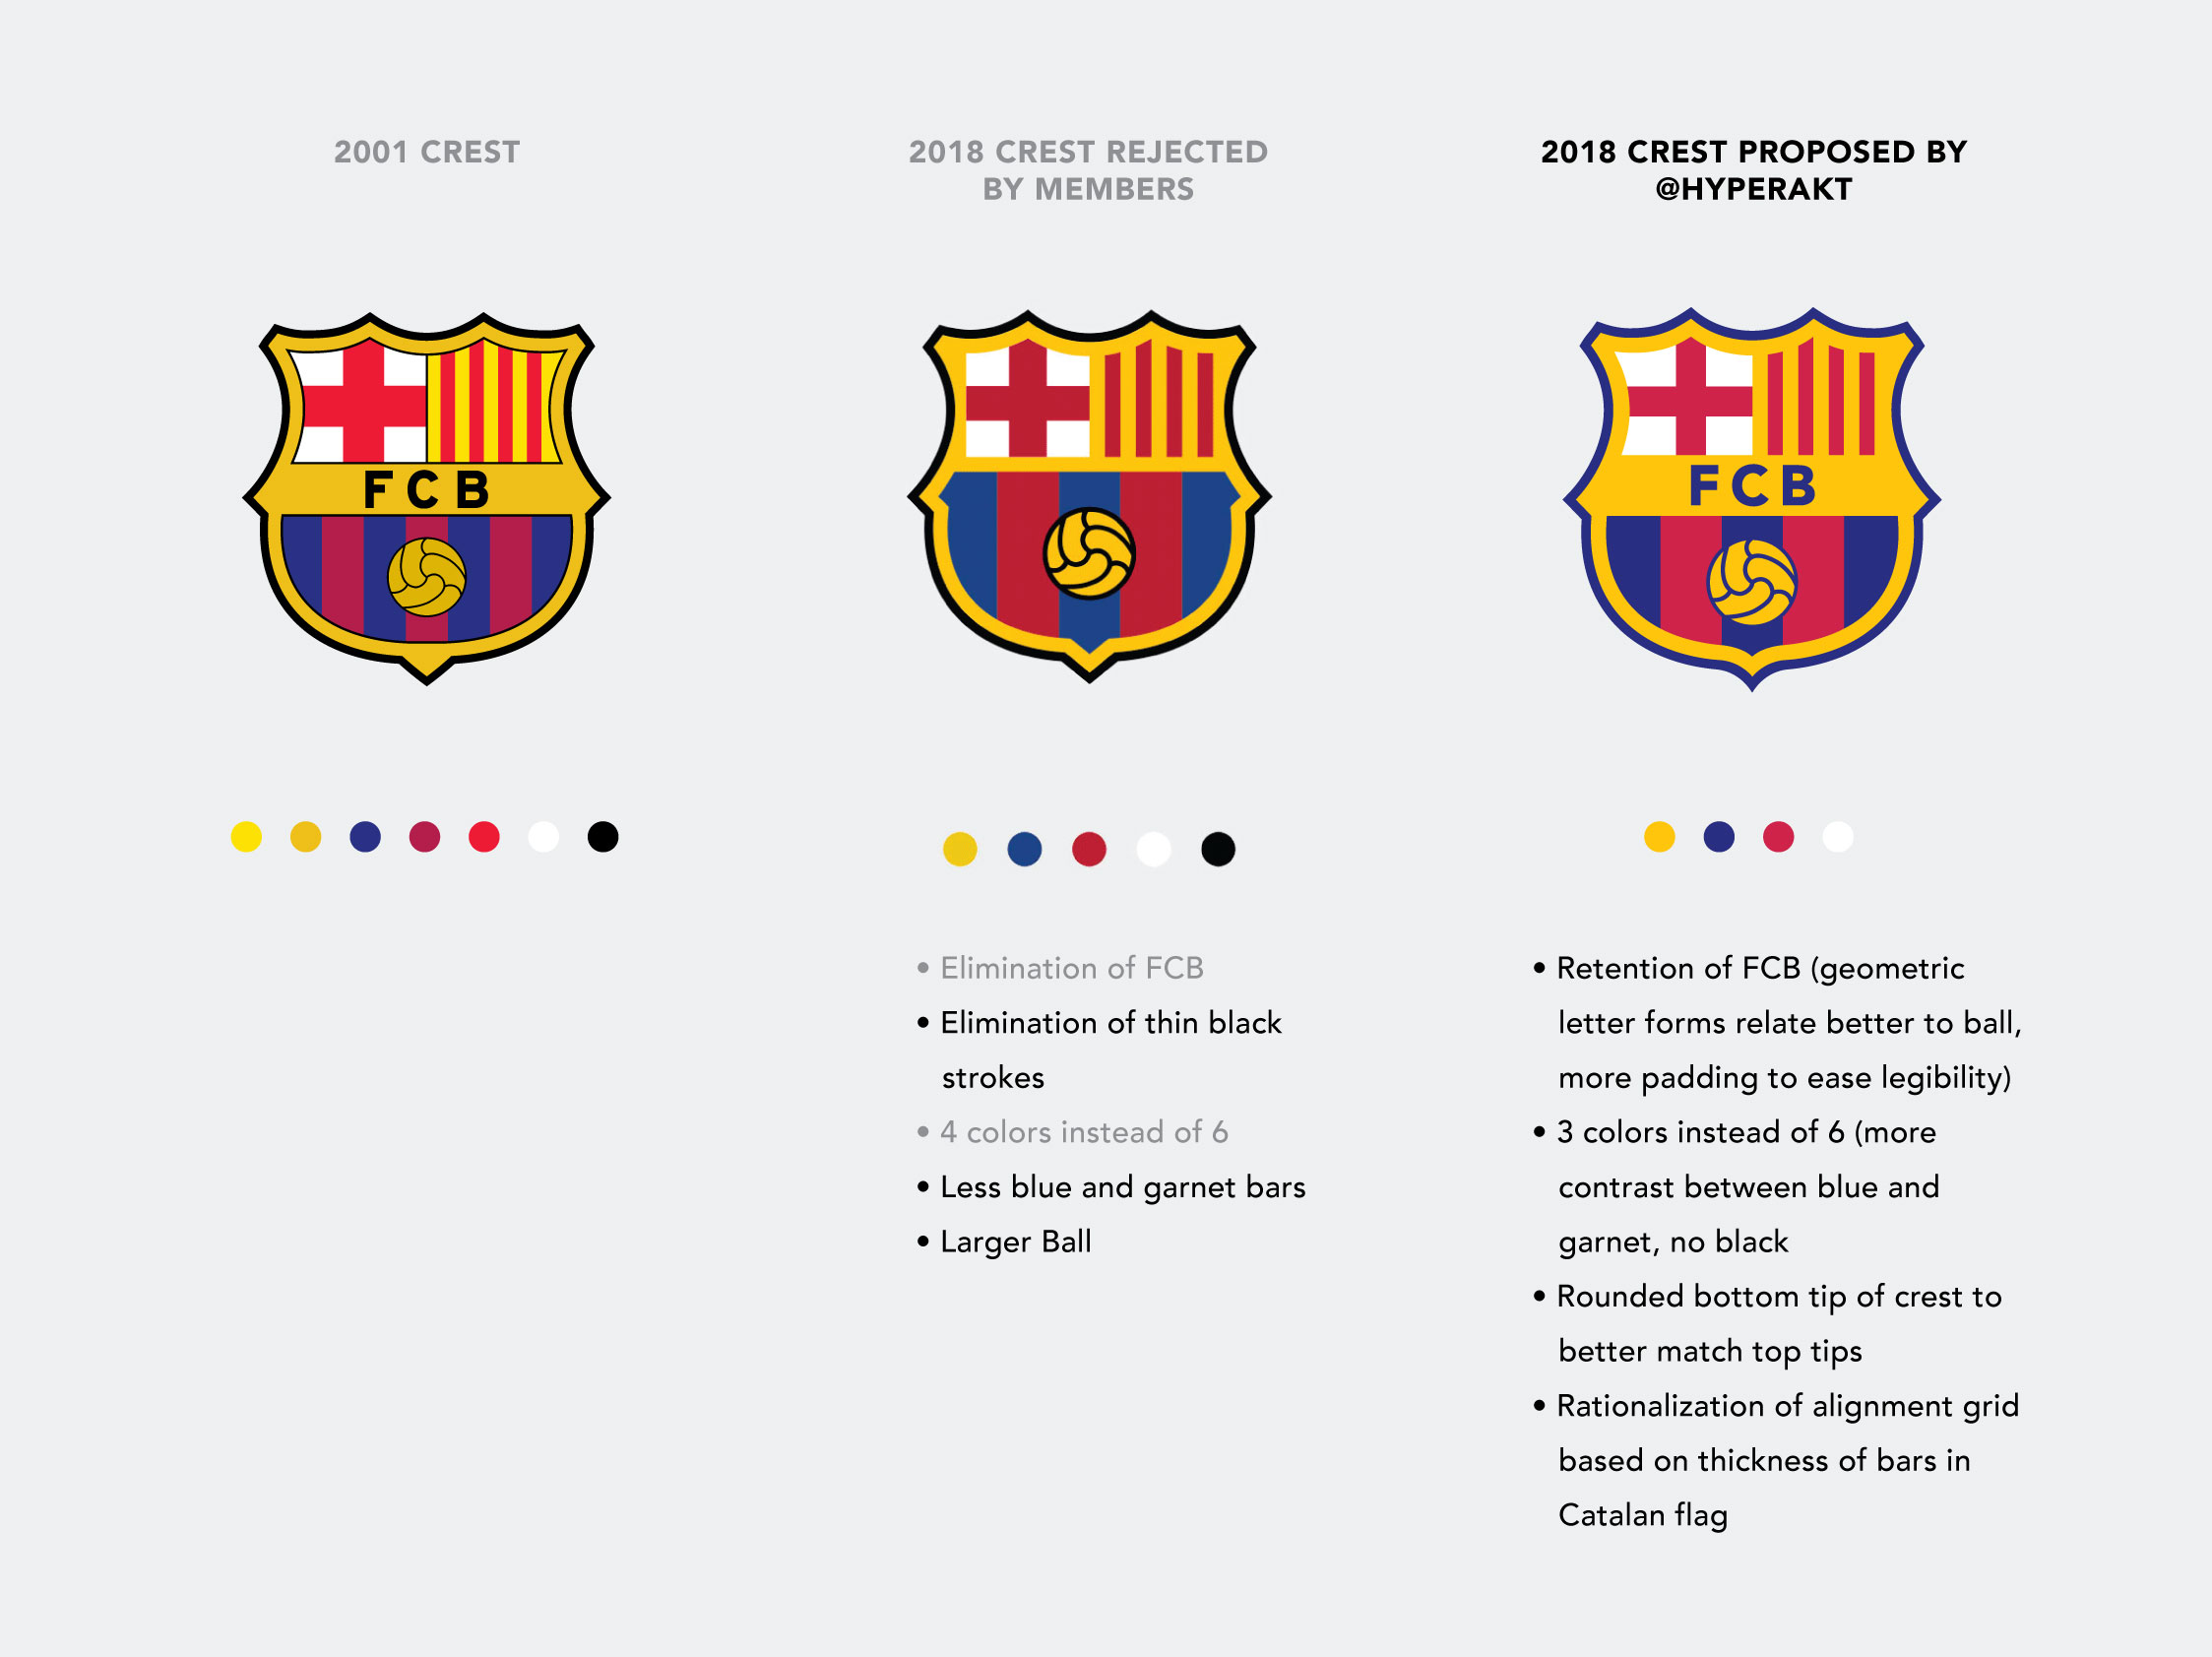 brand new fc barcelona logo may no go brand new fc barcelona logo may no go